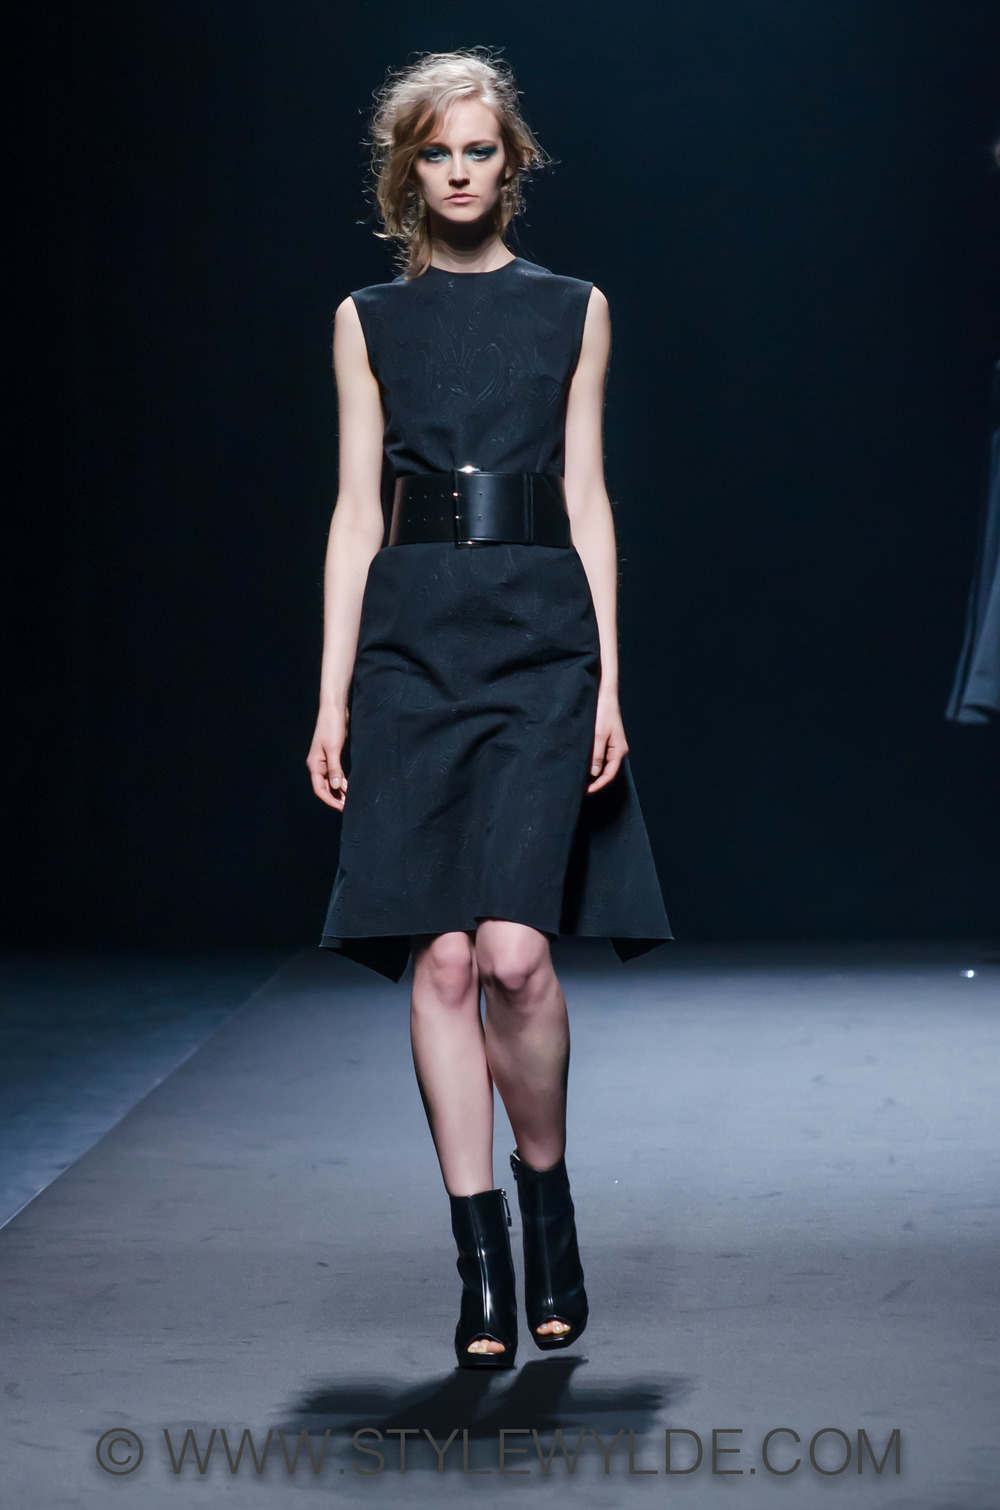 stylewylde_ADF_AW14_edited (1 of 22).jpg